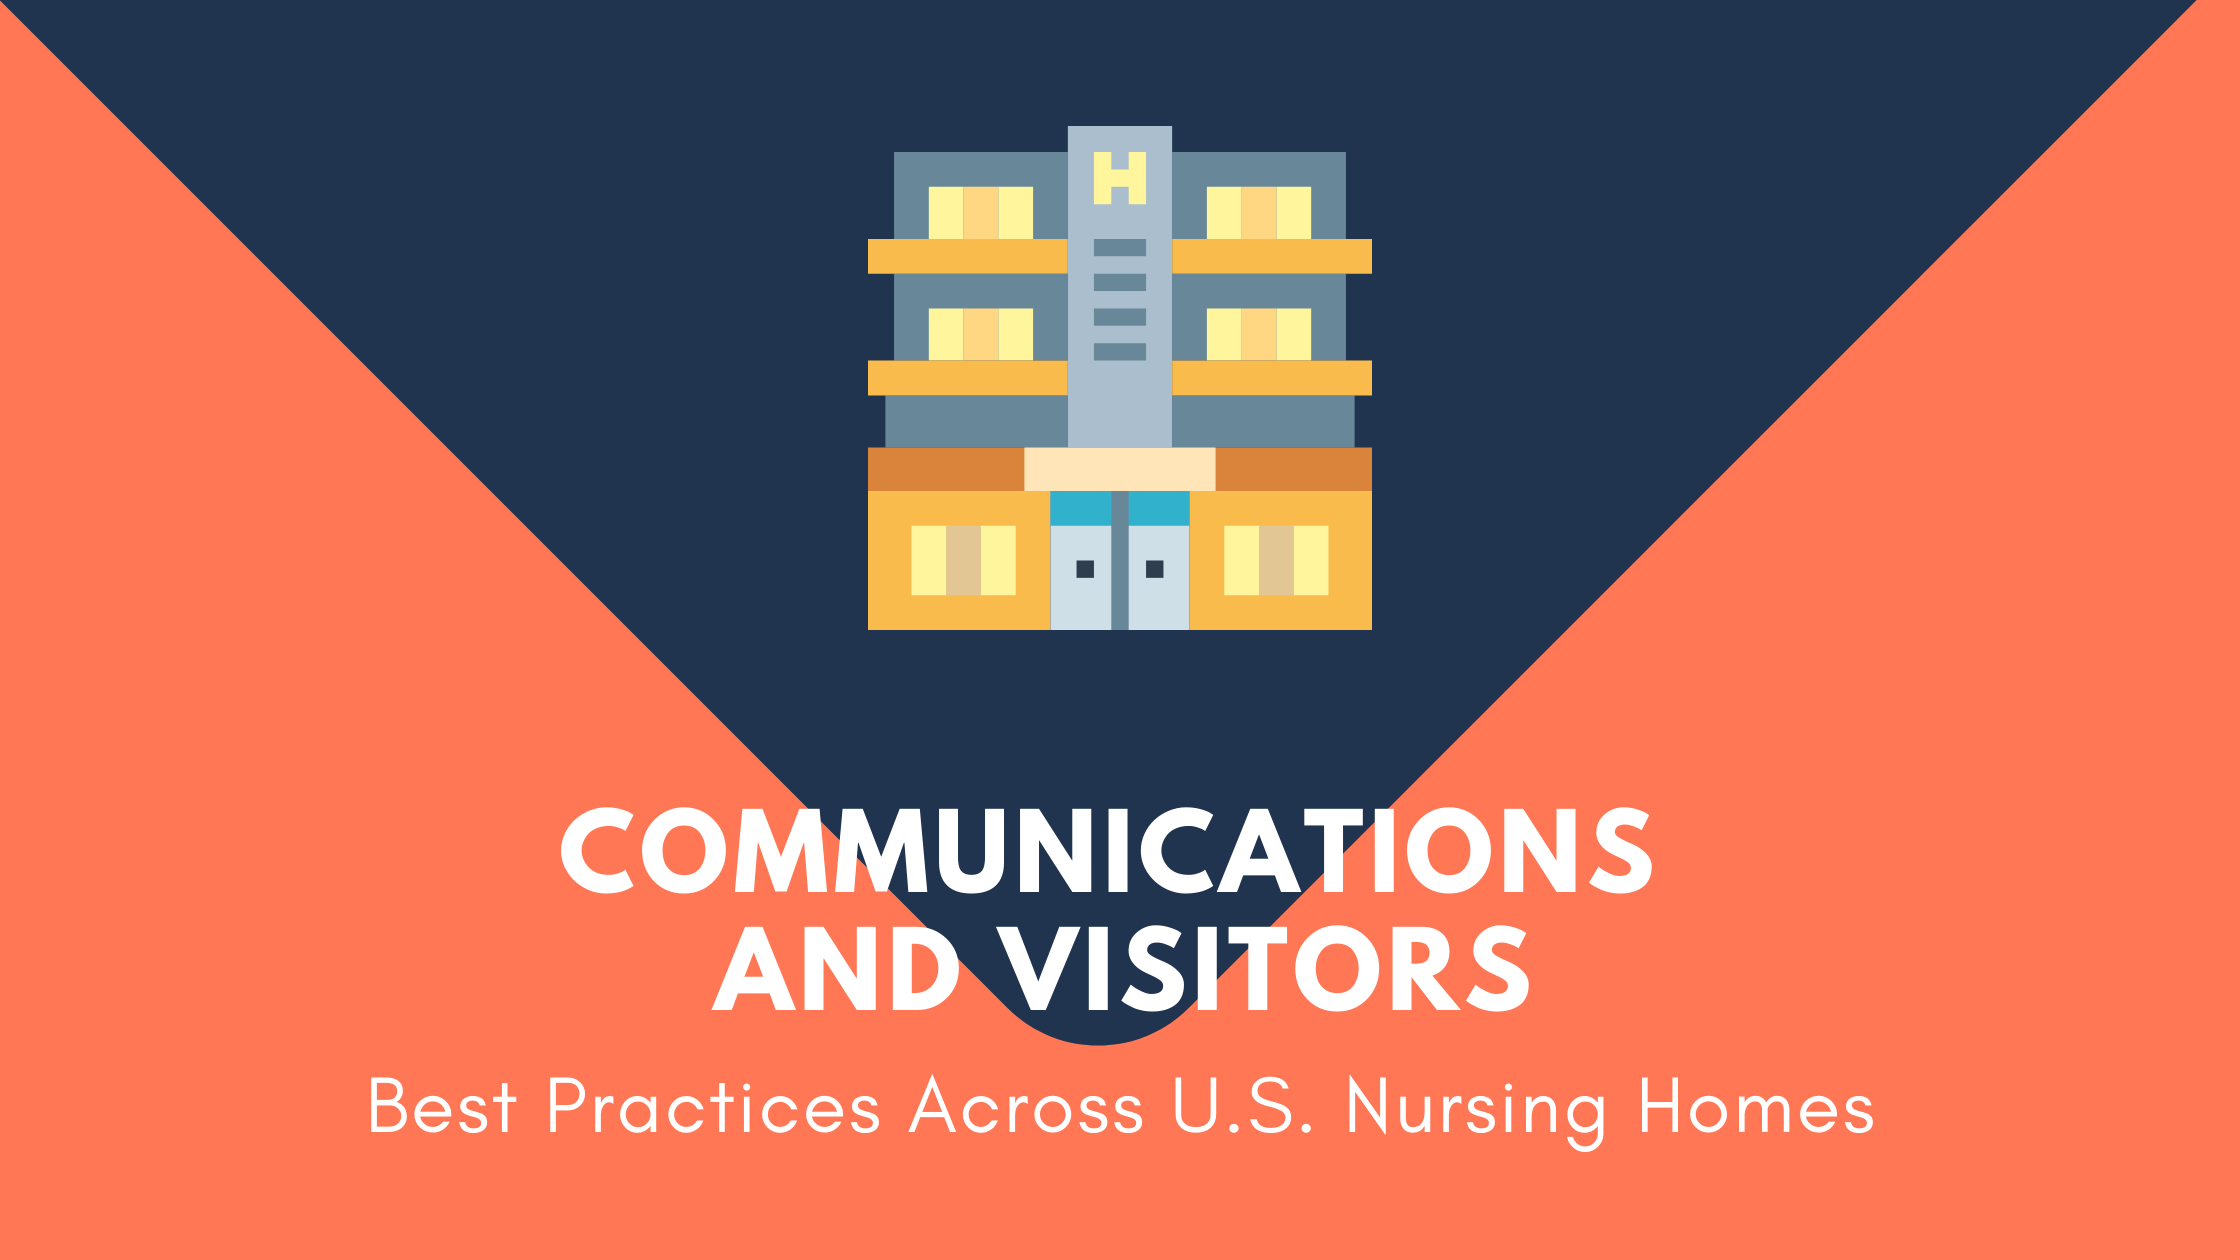 COMMUNICATIONS AND VISITORS Best Practices Across U.S. Nursing Homes